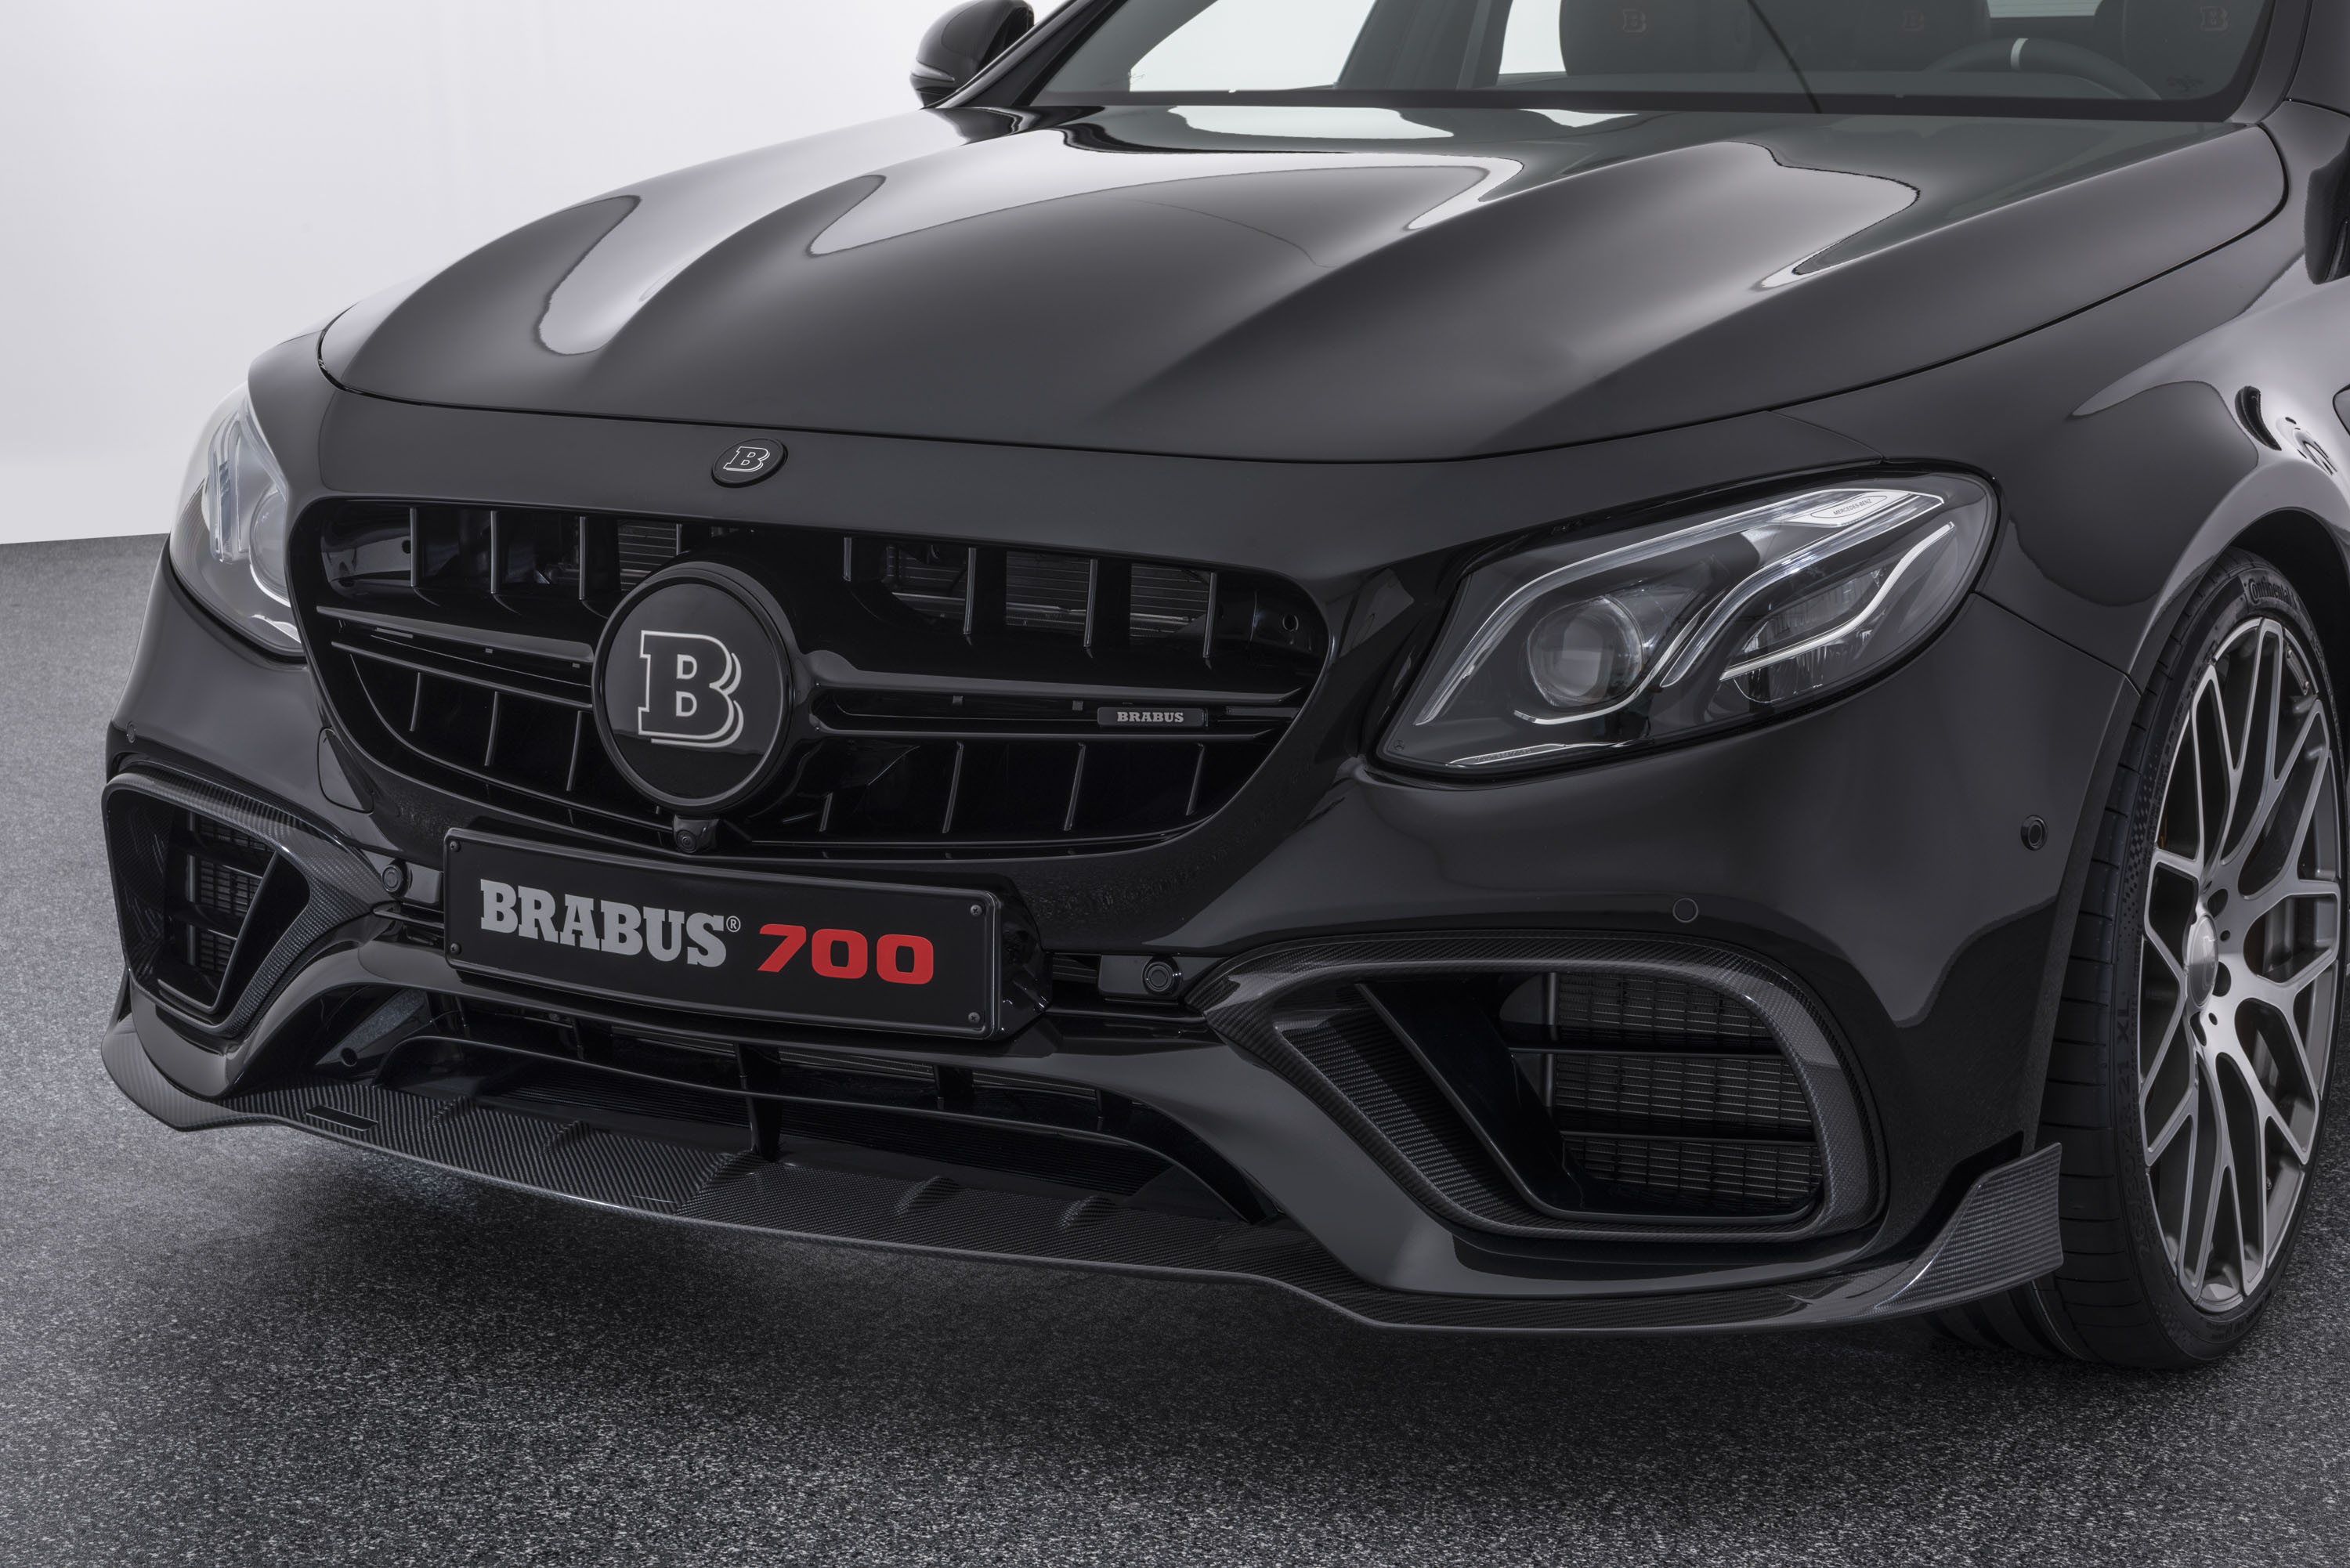 2017 Mercedes-AMG E63 Brabus 700 | Top Speed